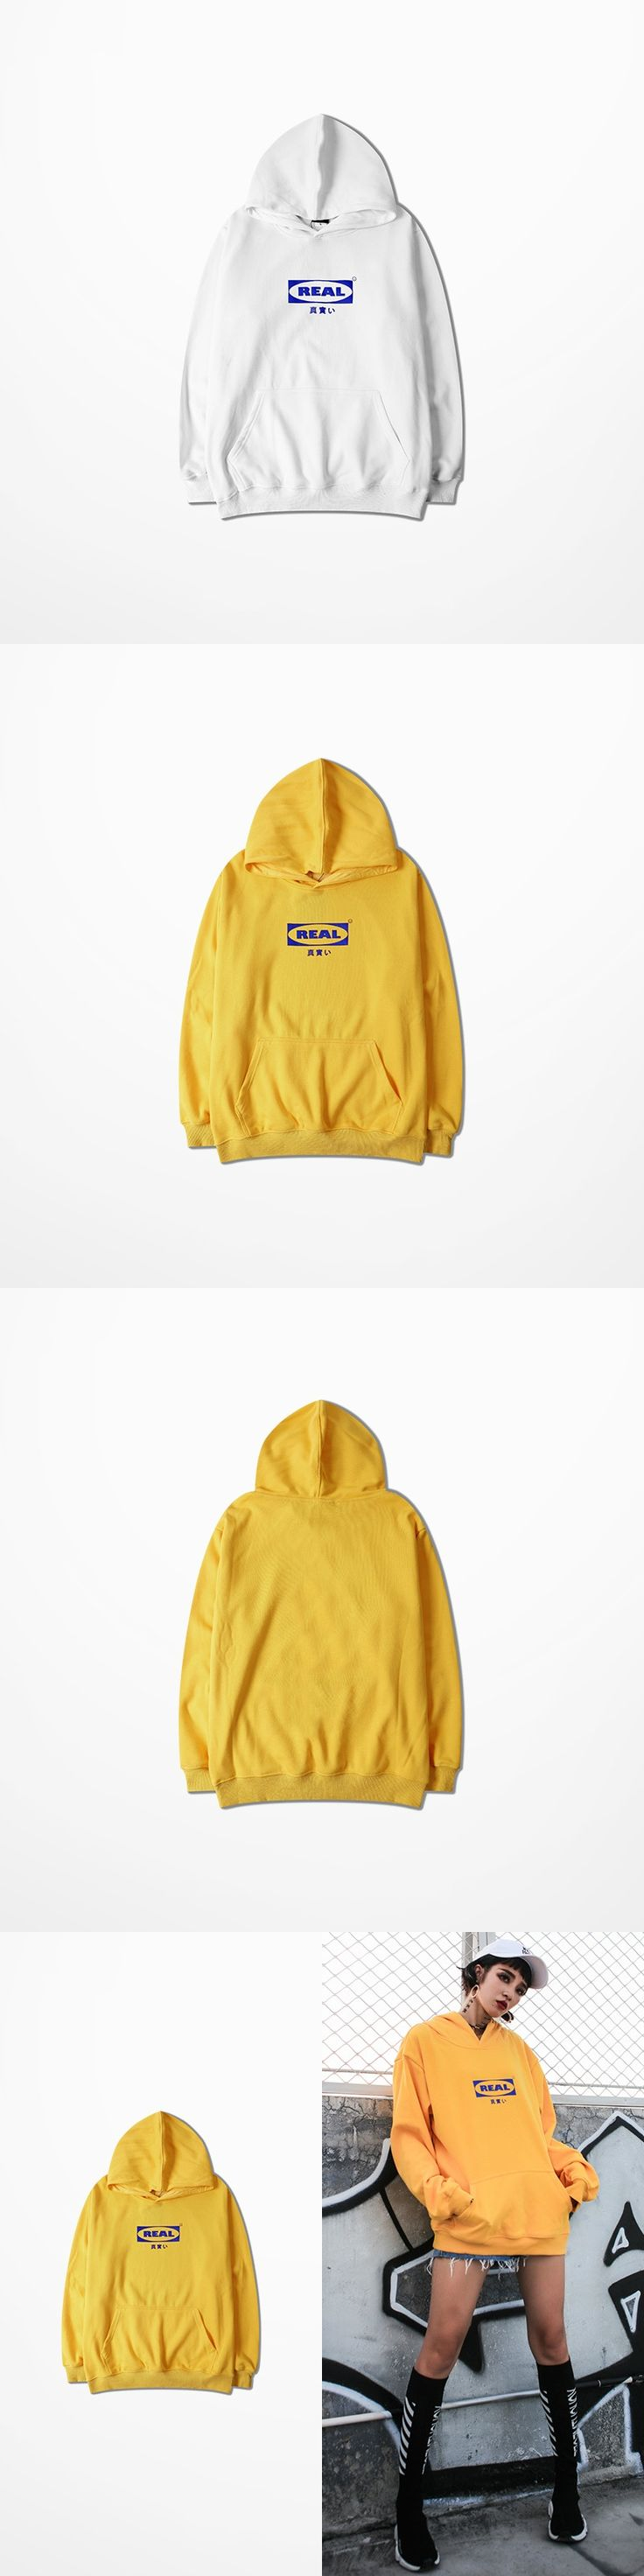 Fashion Design Yellow Hoodie Man Streetwear Real Print Streetwear Justin Bieber Mens Hoodies And Sweatshirts High Street Kanye